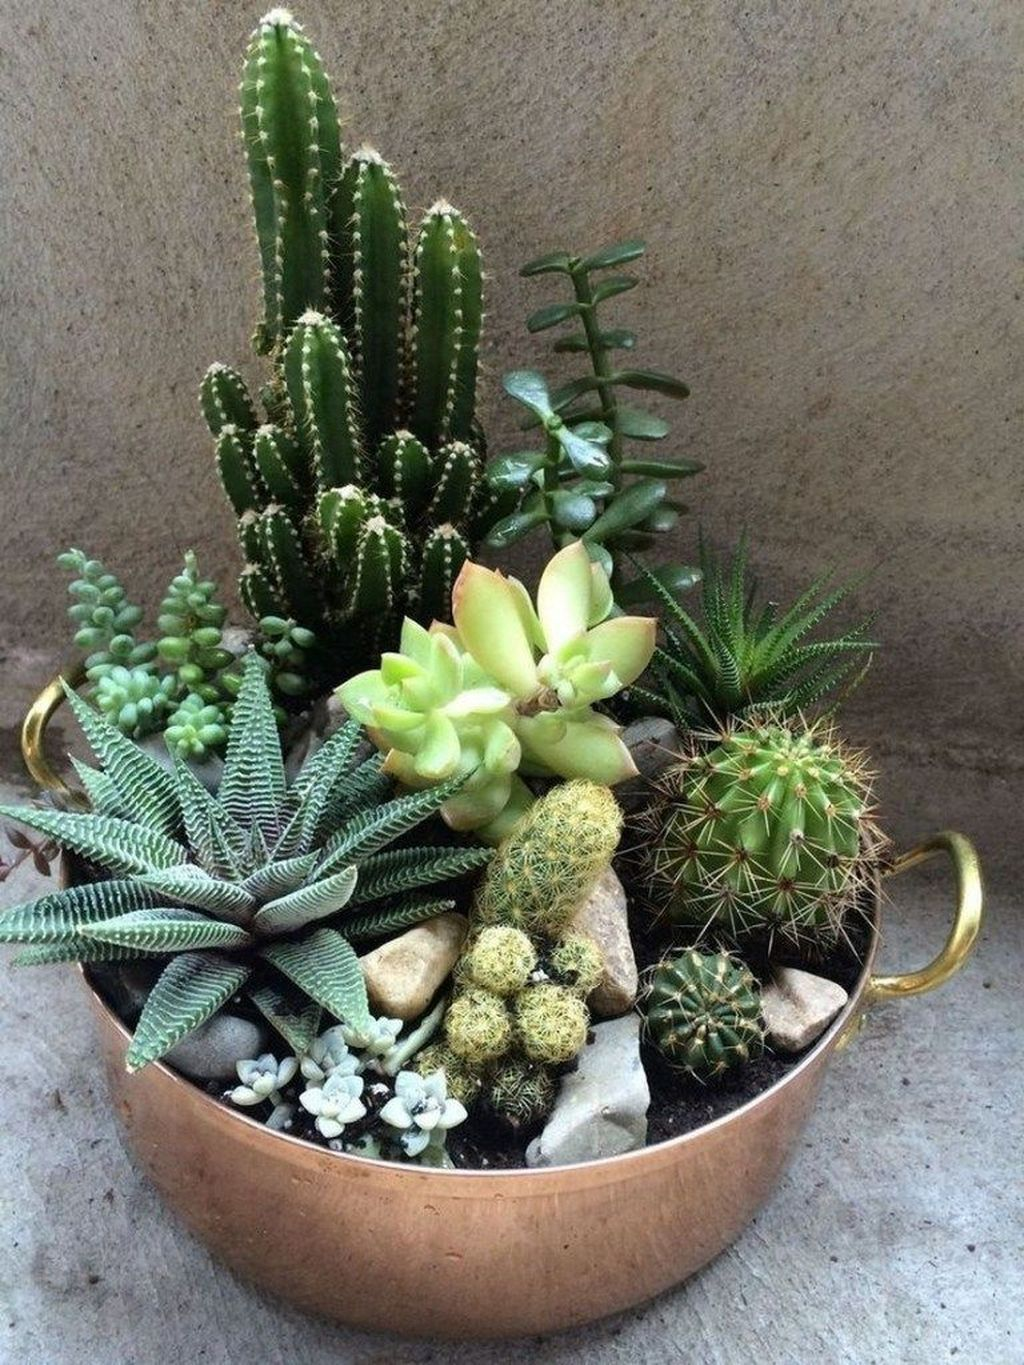 35 Lovely Small Cactus Ideas for Indoor